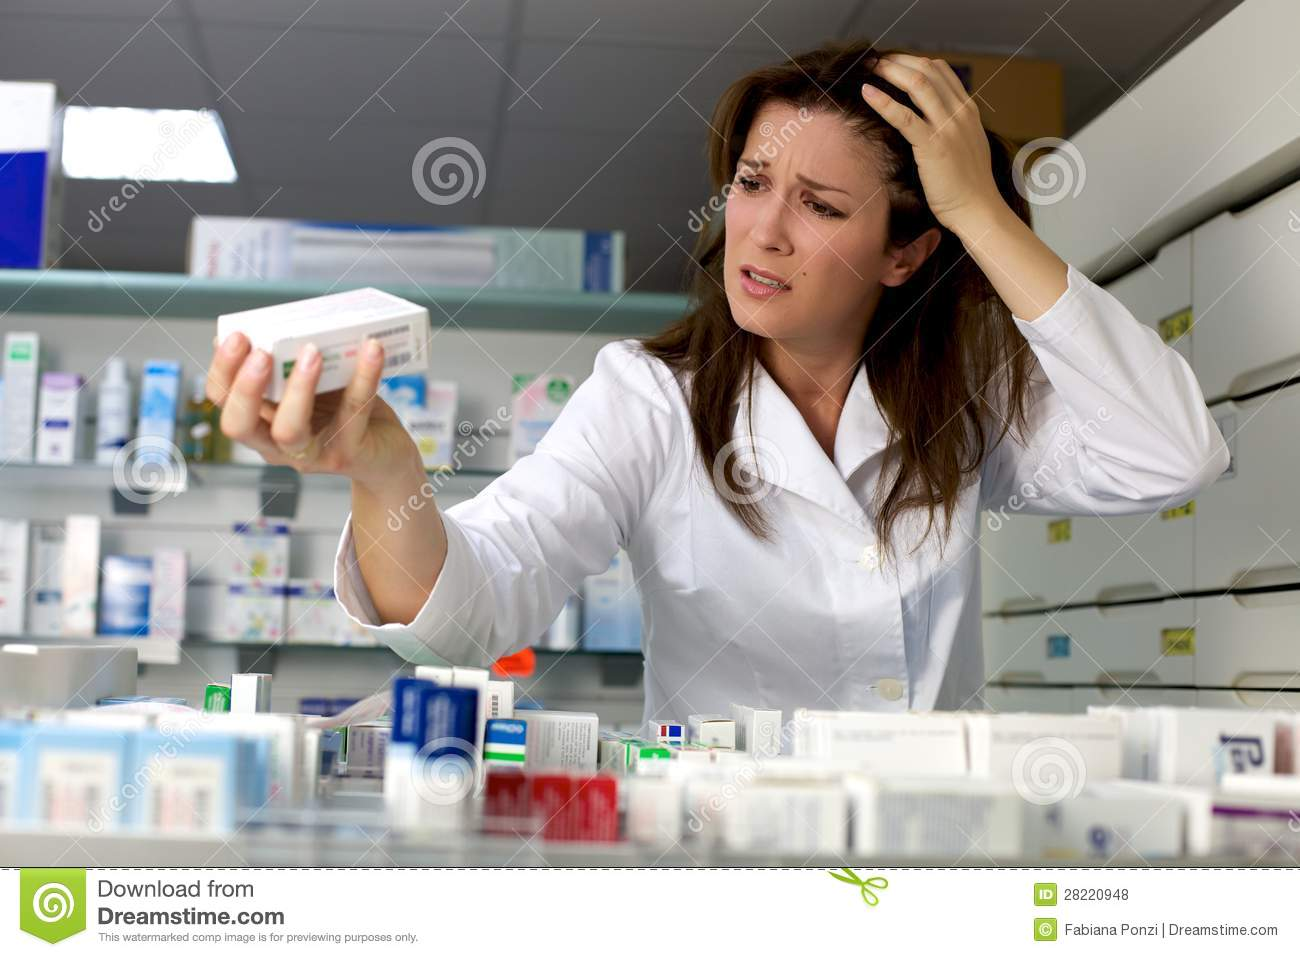 Tadalafil Mail Order Pharmacy